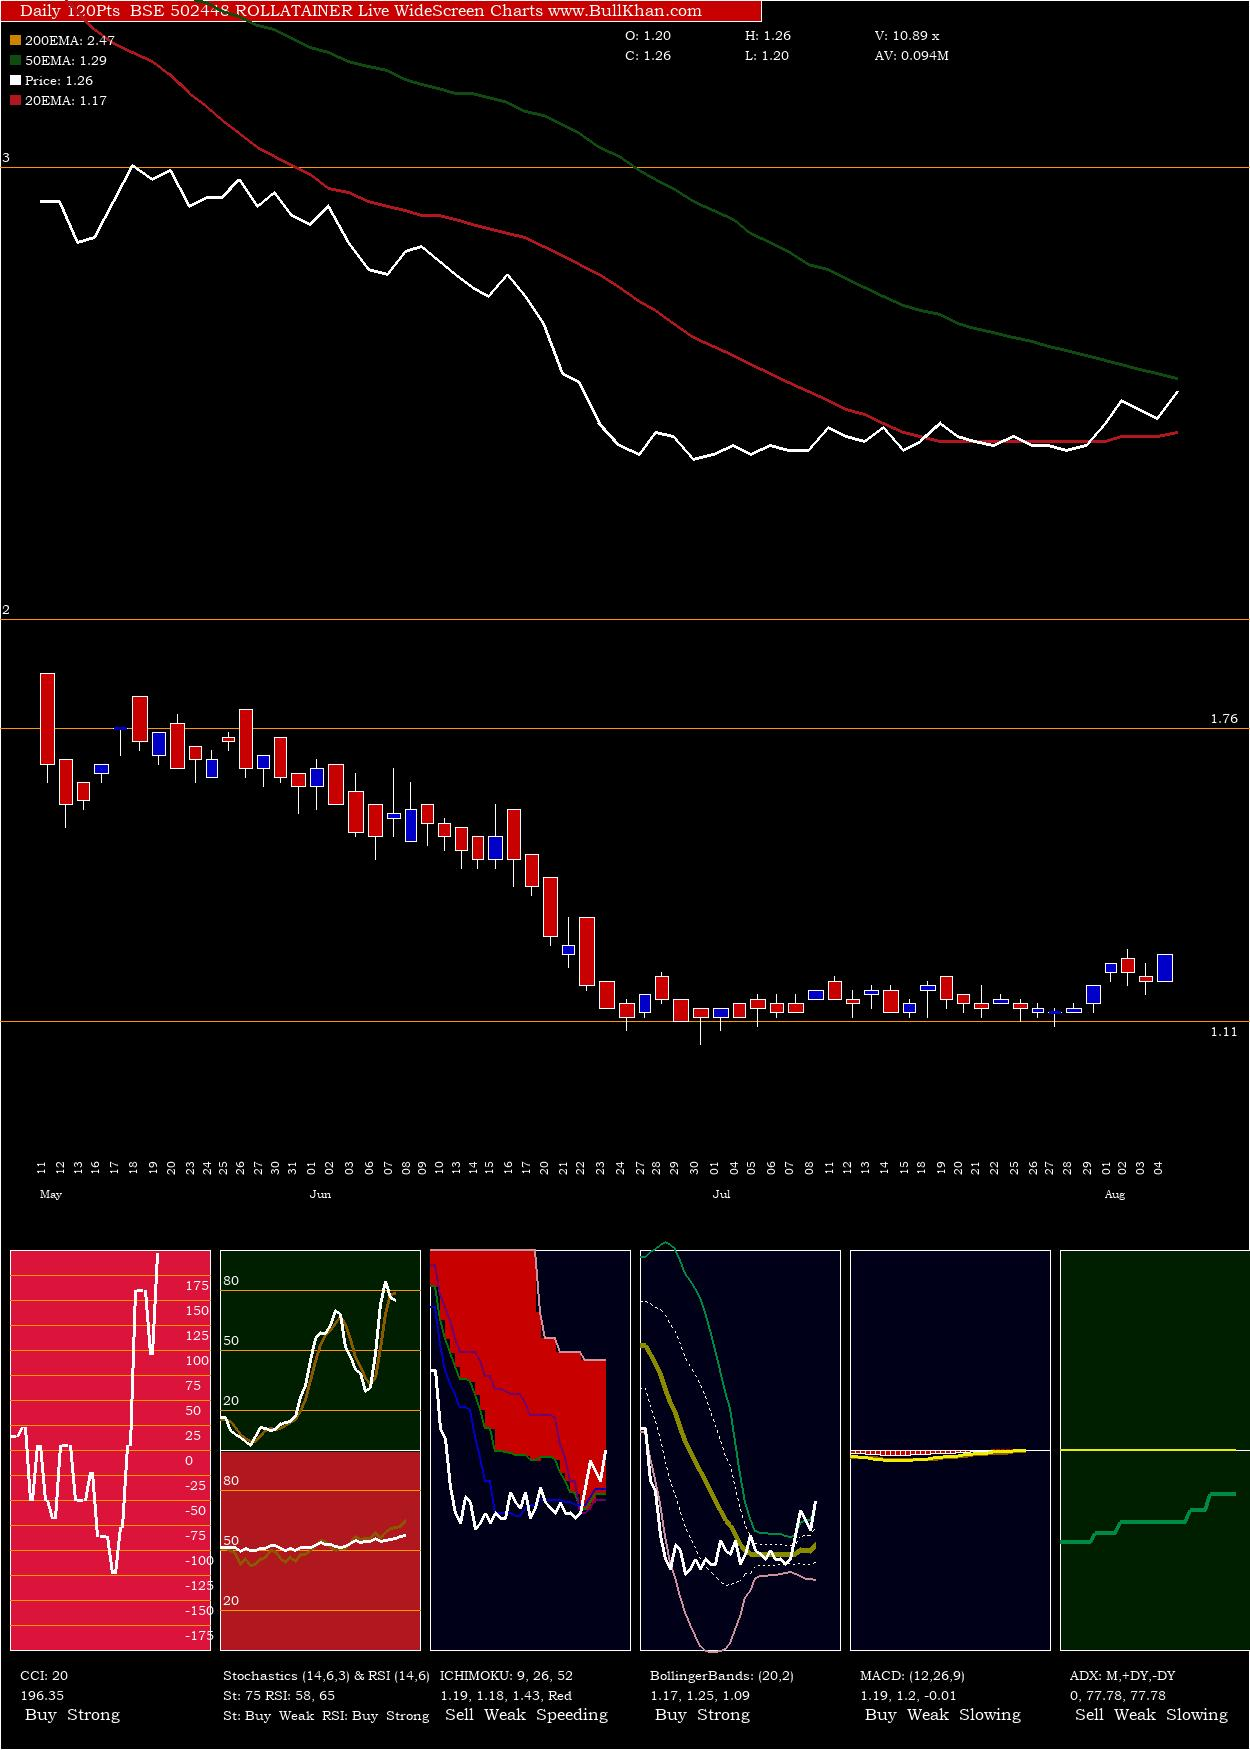 Rollatainer charts and indicators